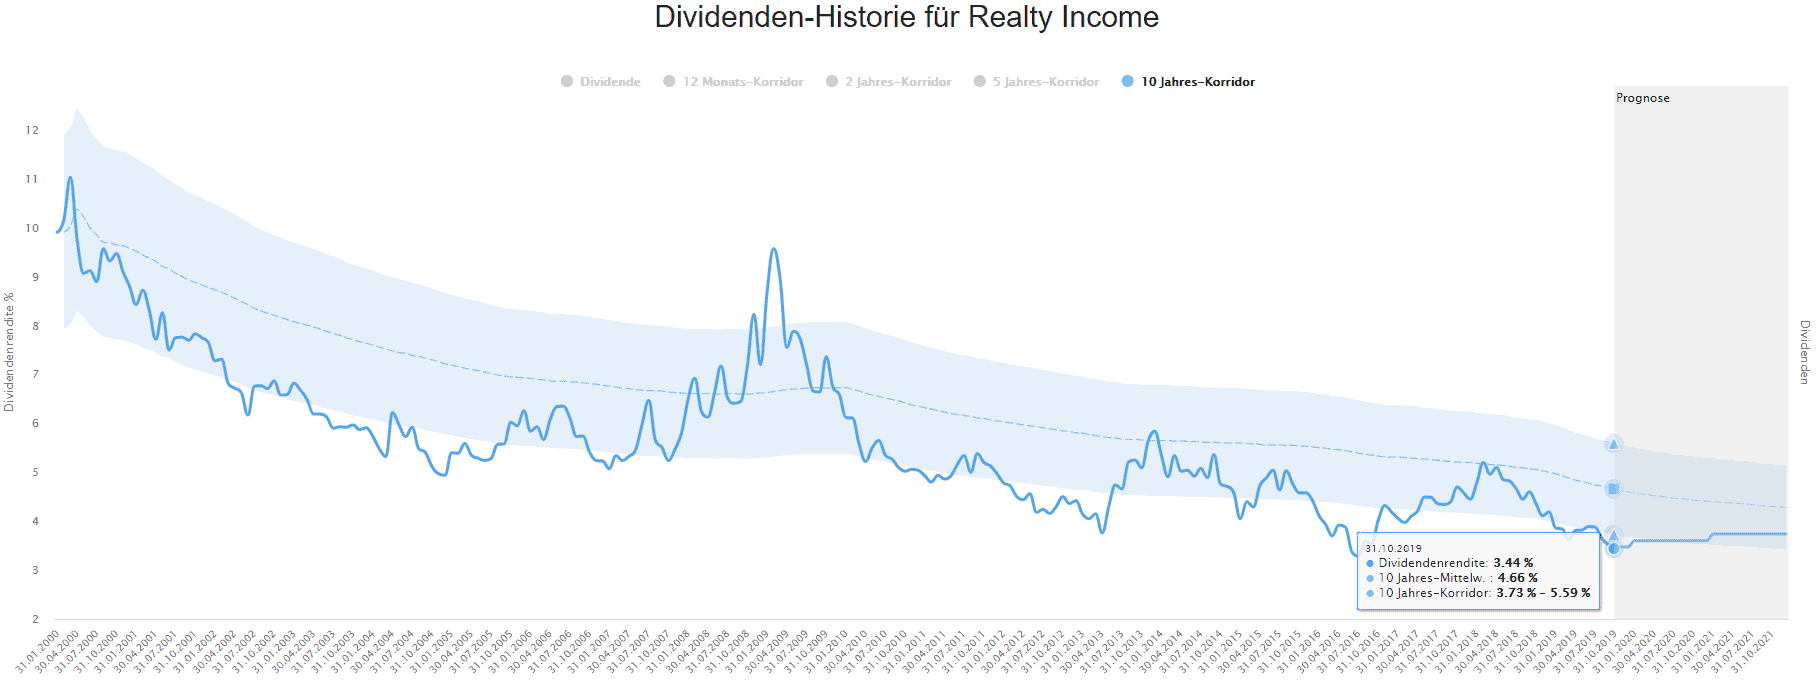 Realty Income im Dividenden-Turbo